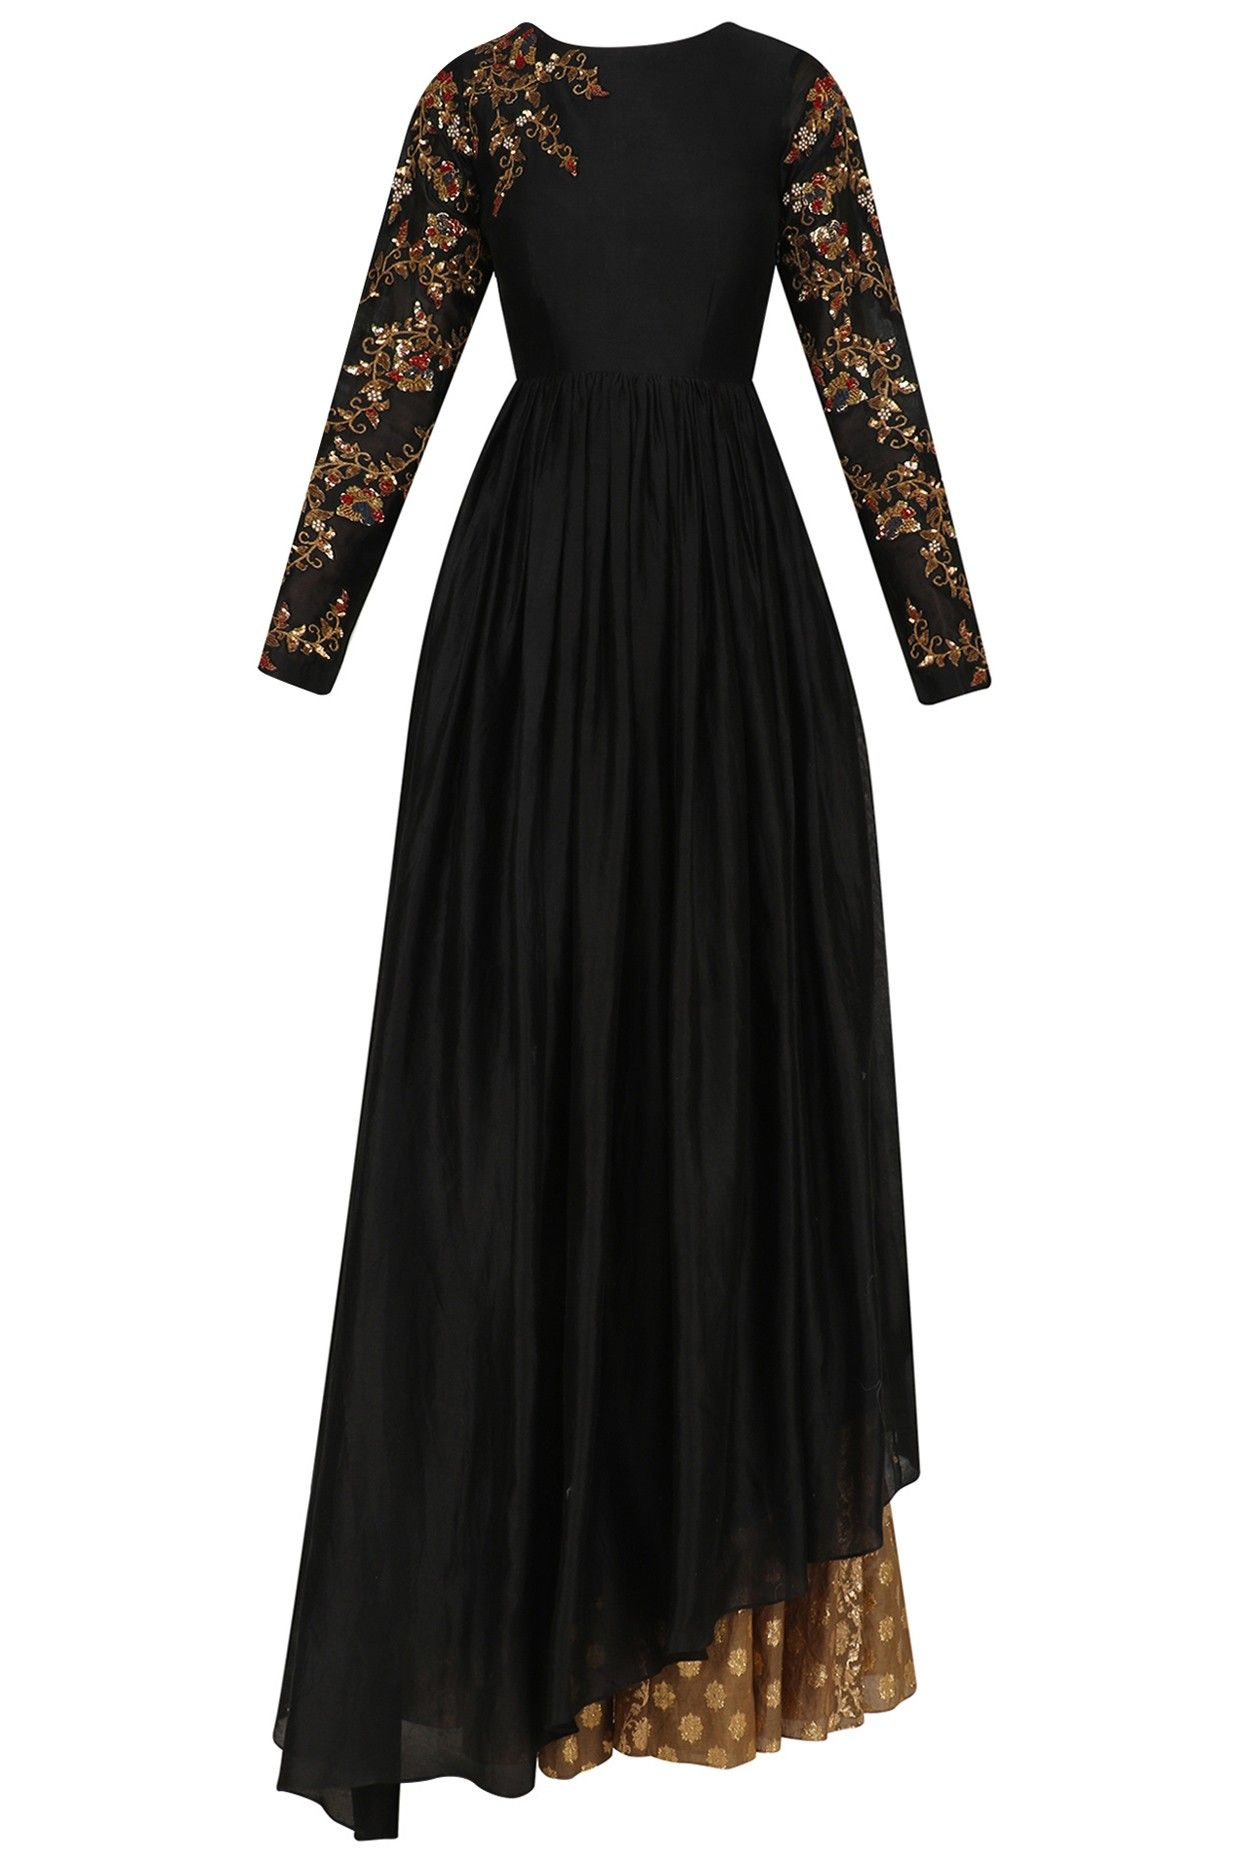 Black floral embroidered asymmetric kurta and skirt set available only at Pernia's Pop Up Shop.